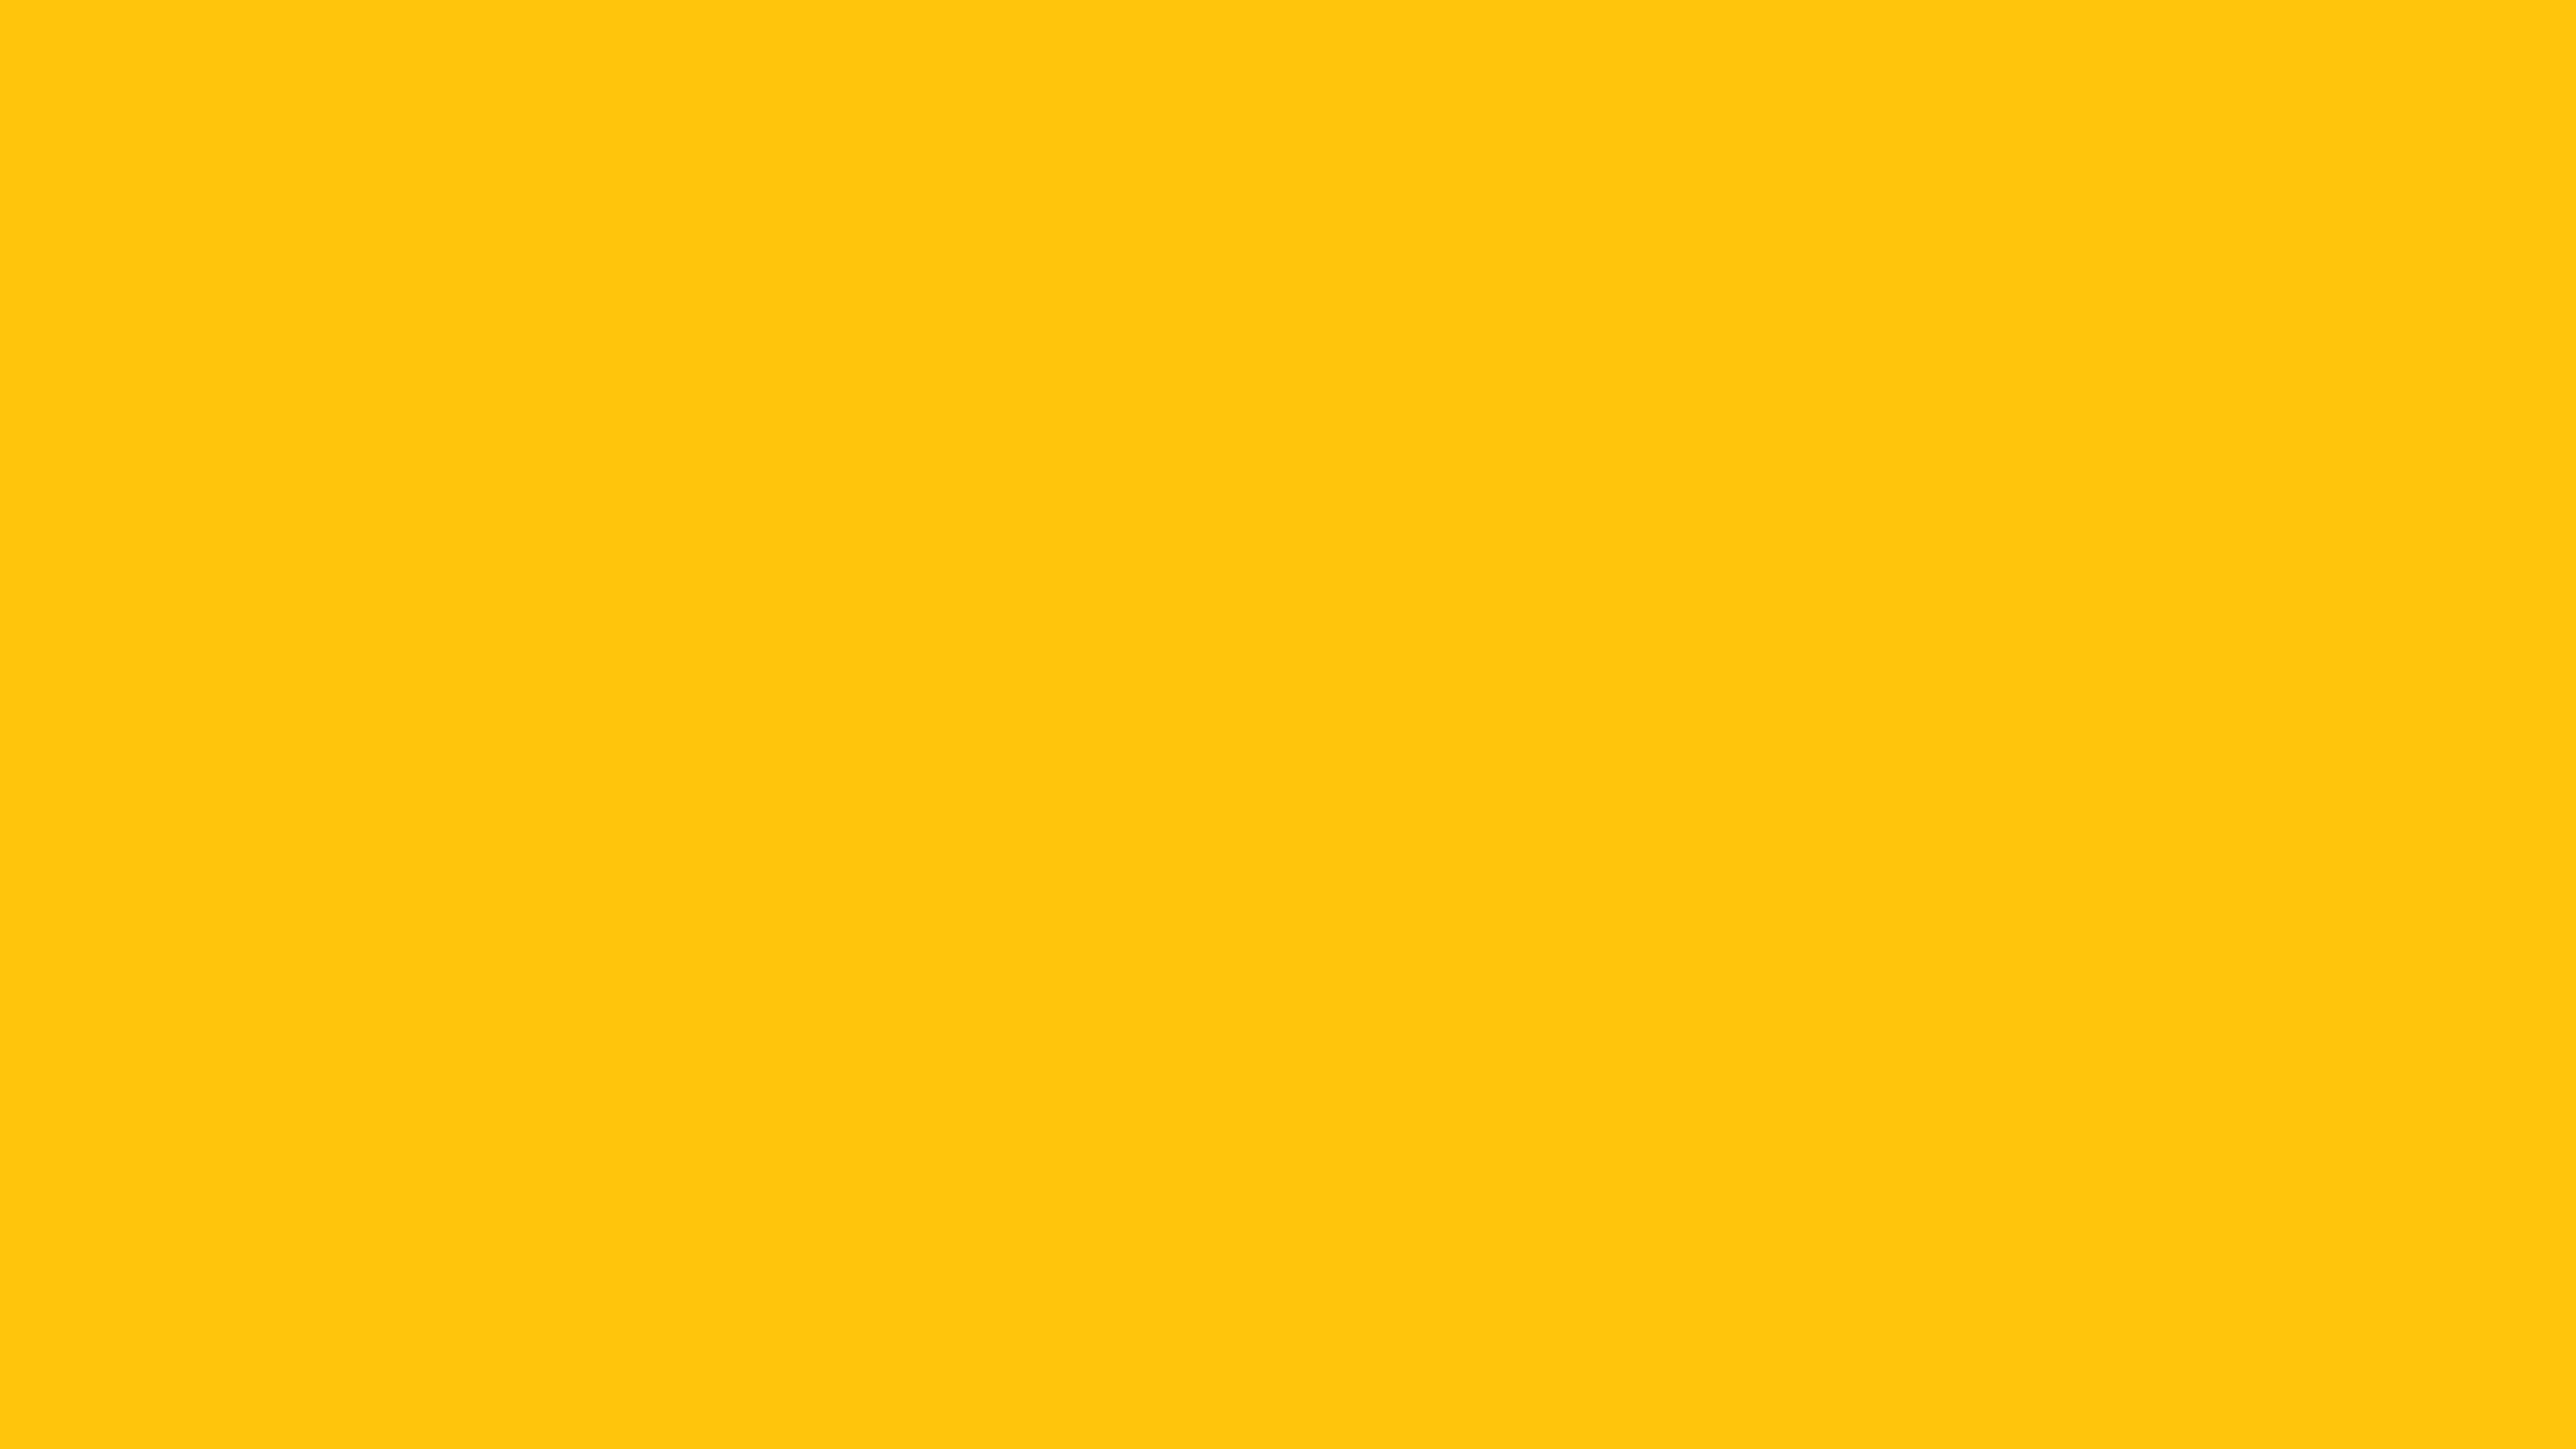 7680x4320 Mikado Yellow Solid Color Background